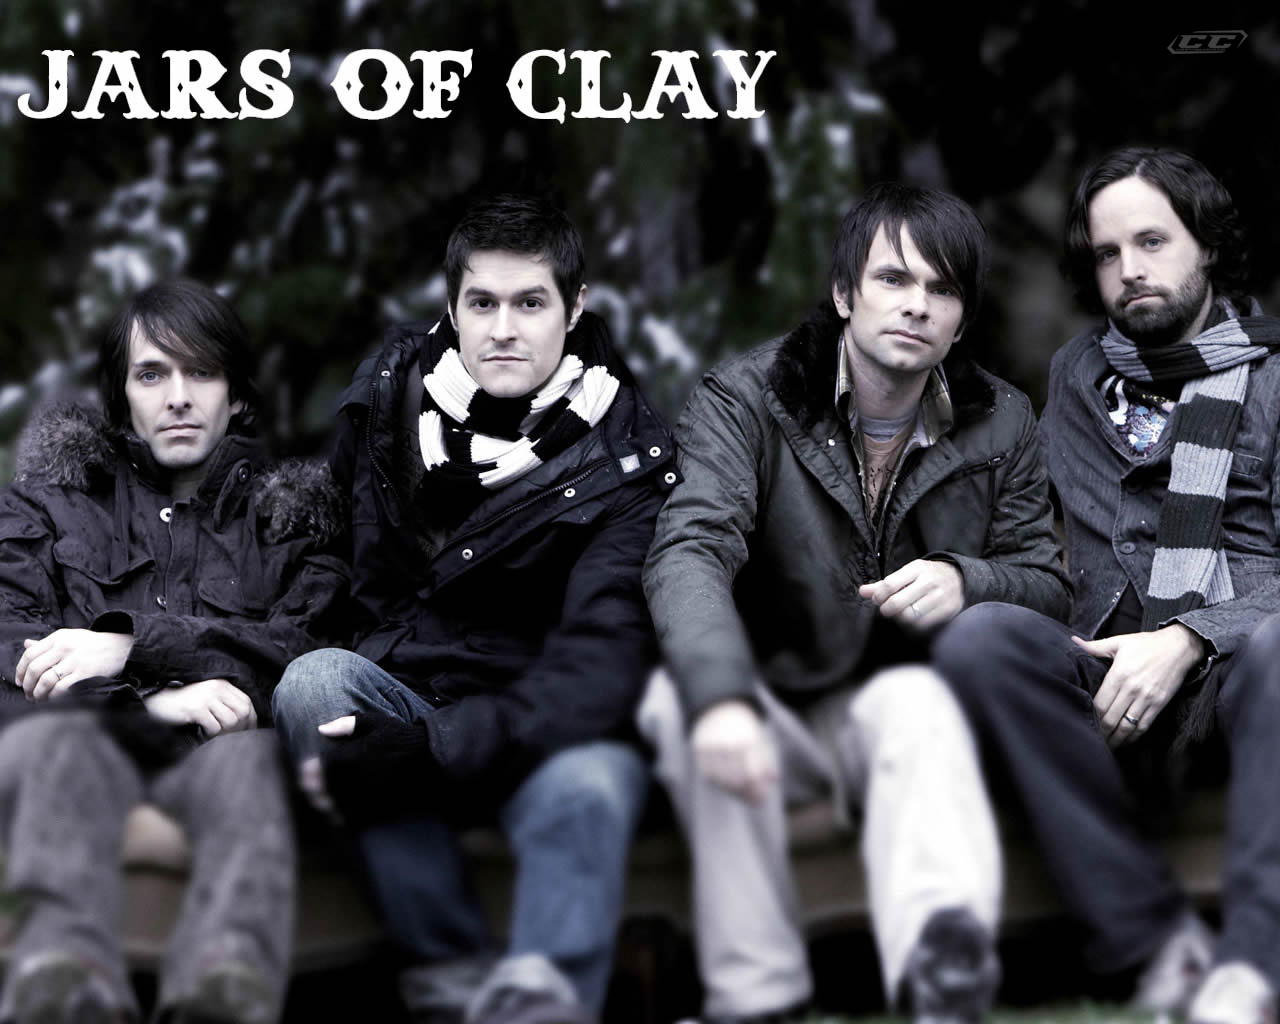 Jars of Clay - Under the Weather 2013 Band Members